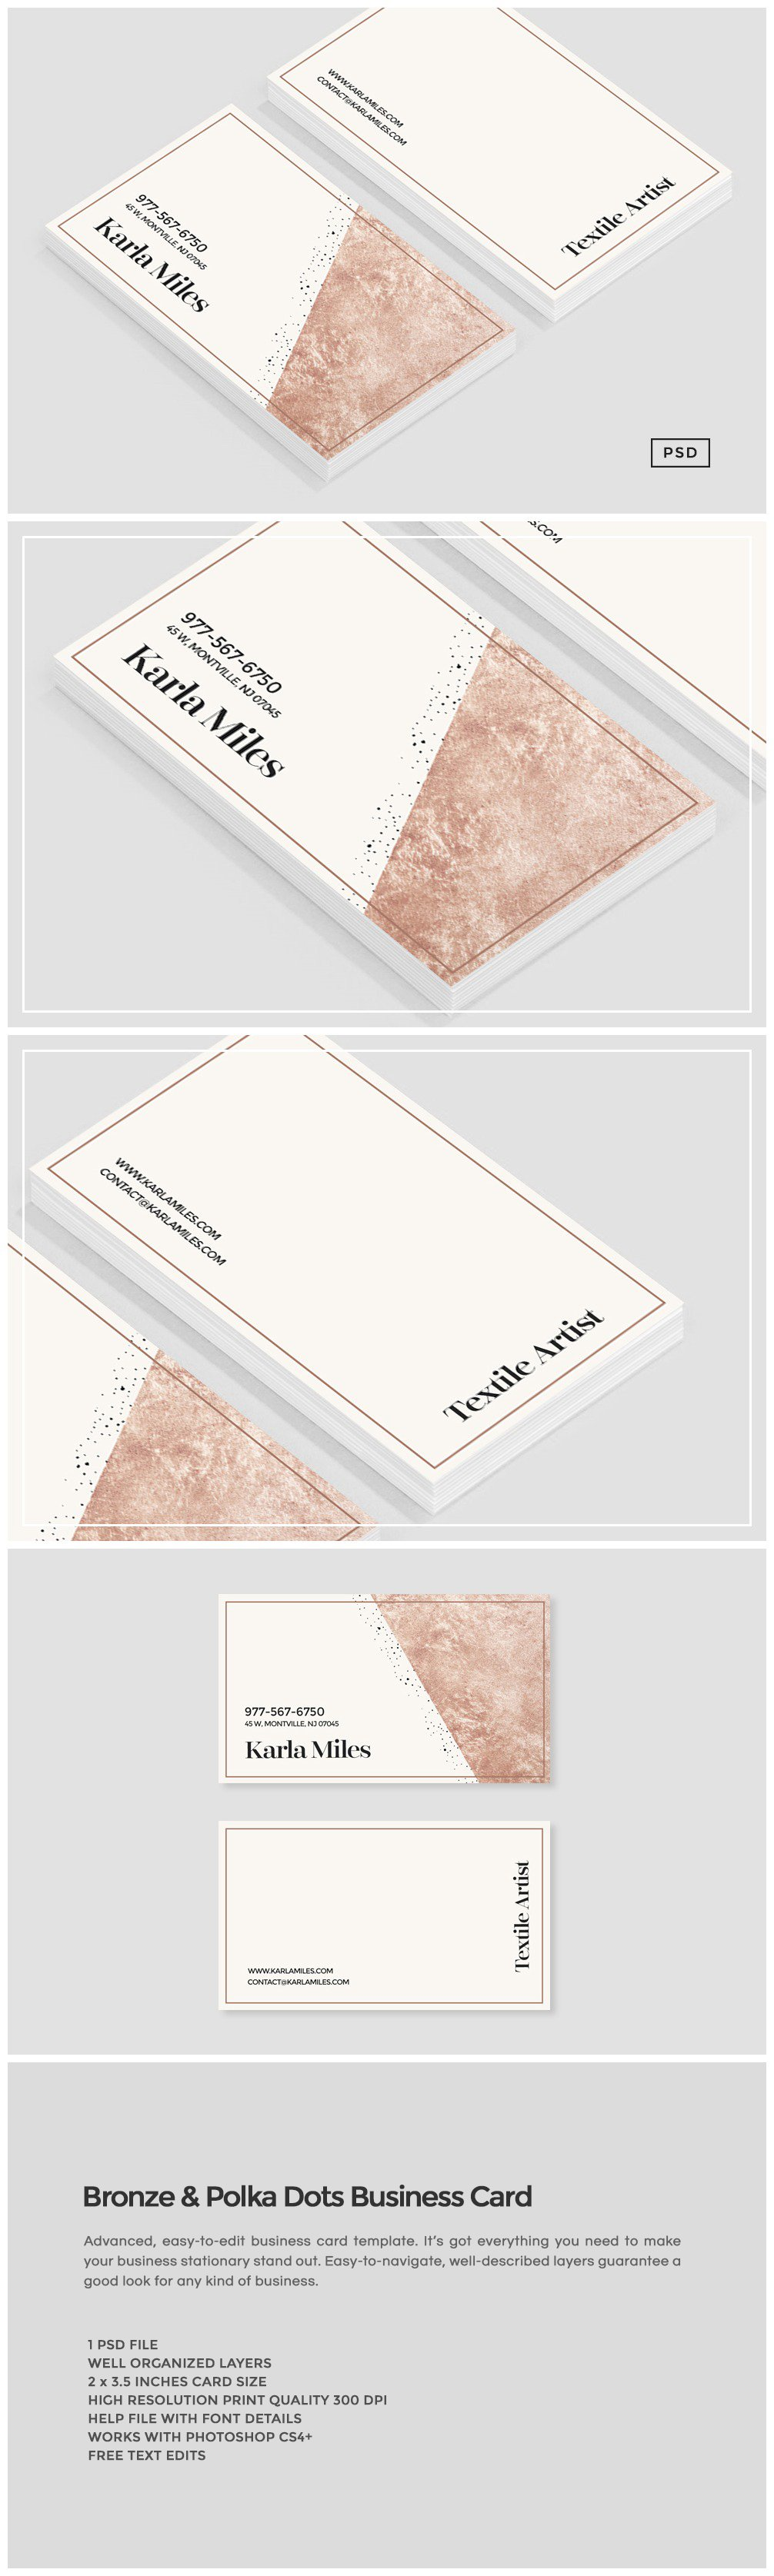 Bronze polka dots business card business card templates bronze polka dots business card business card templates creative market accmission Gallery